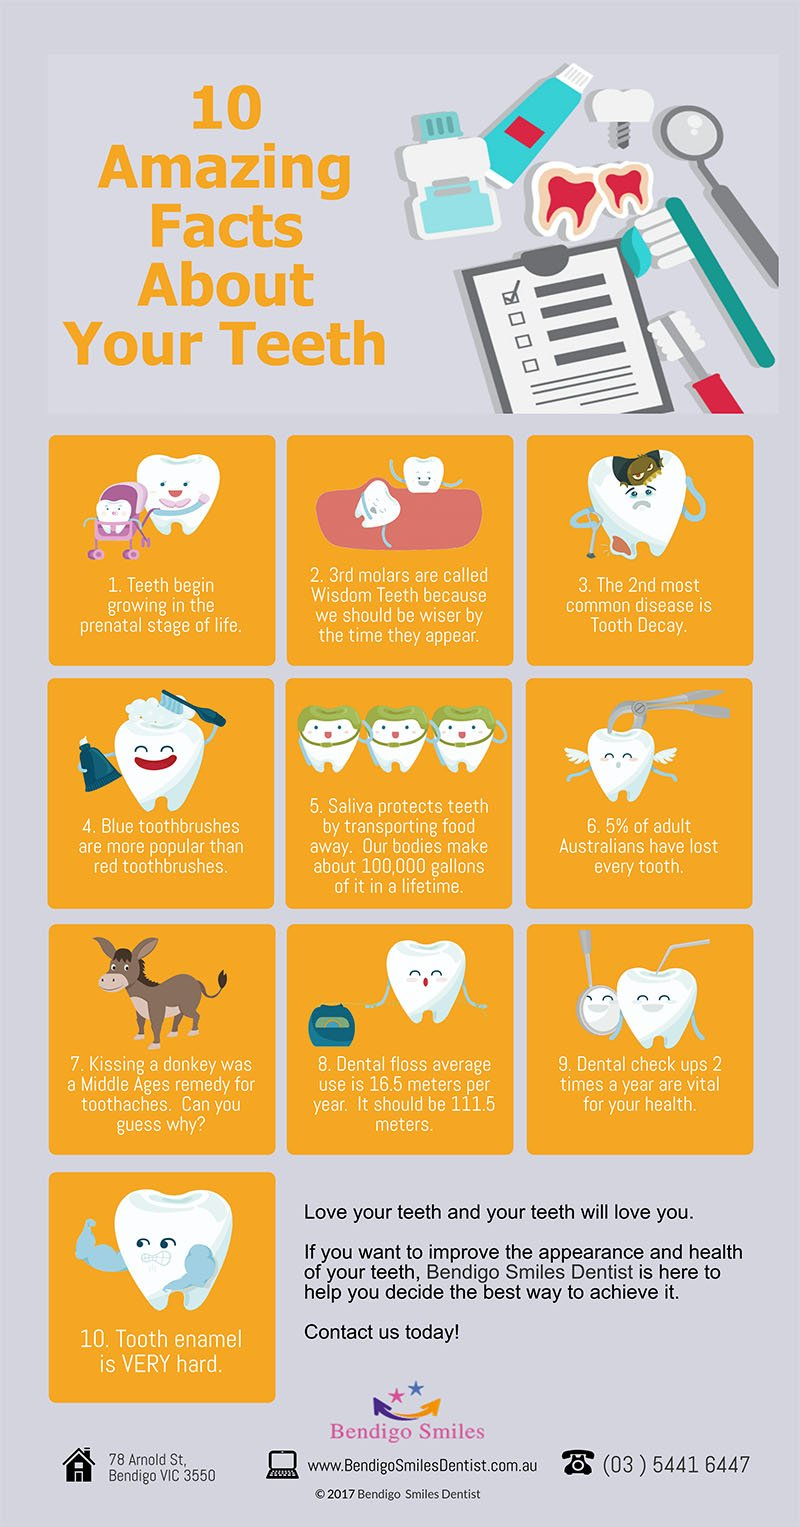 bendigo smiles dentist 10 incredible facts about your teeth that you didnt know before p